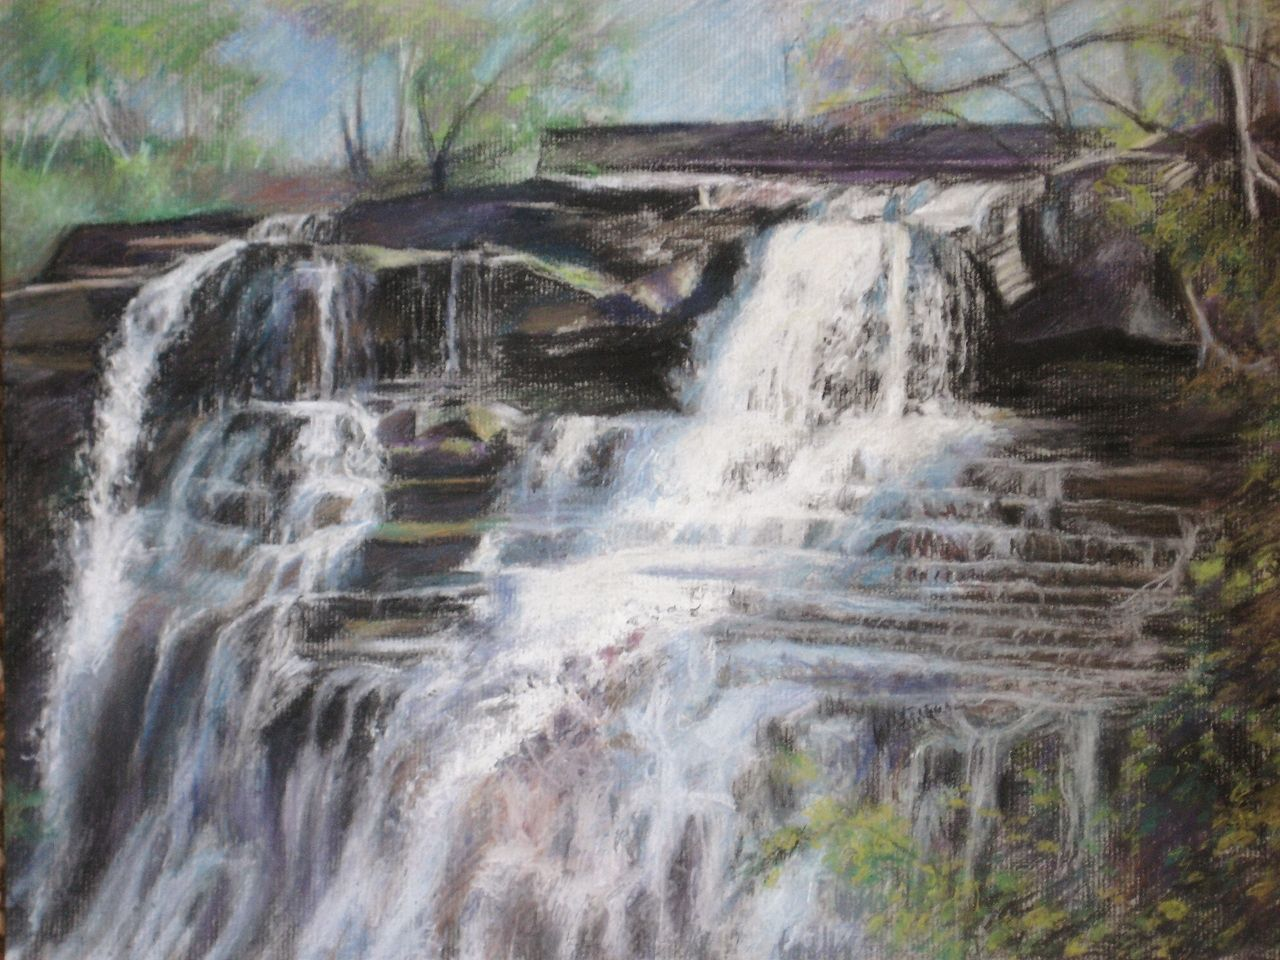 Brandywine Falls (Cuyahoga Valley, Ohio) by Kelsey Hamersley ~ Charcoal and pastel drawing